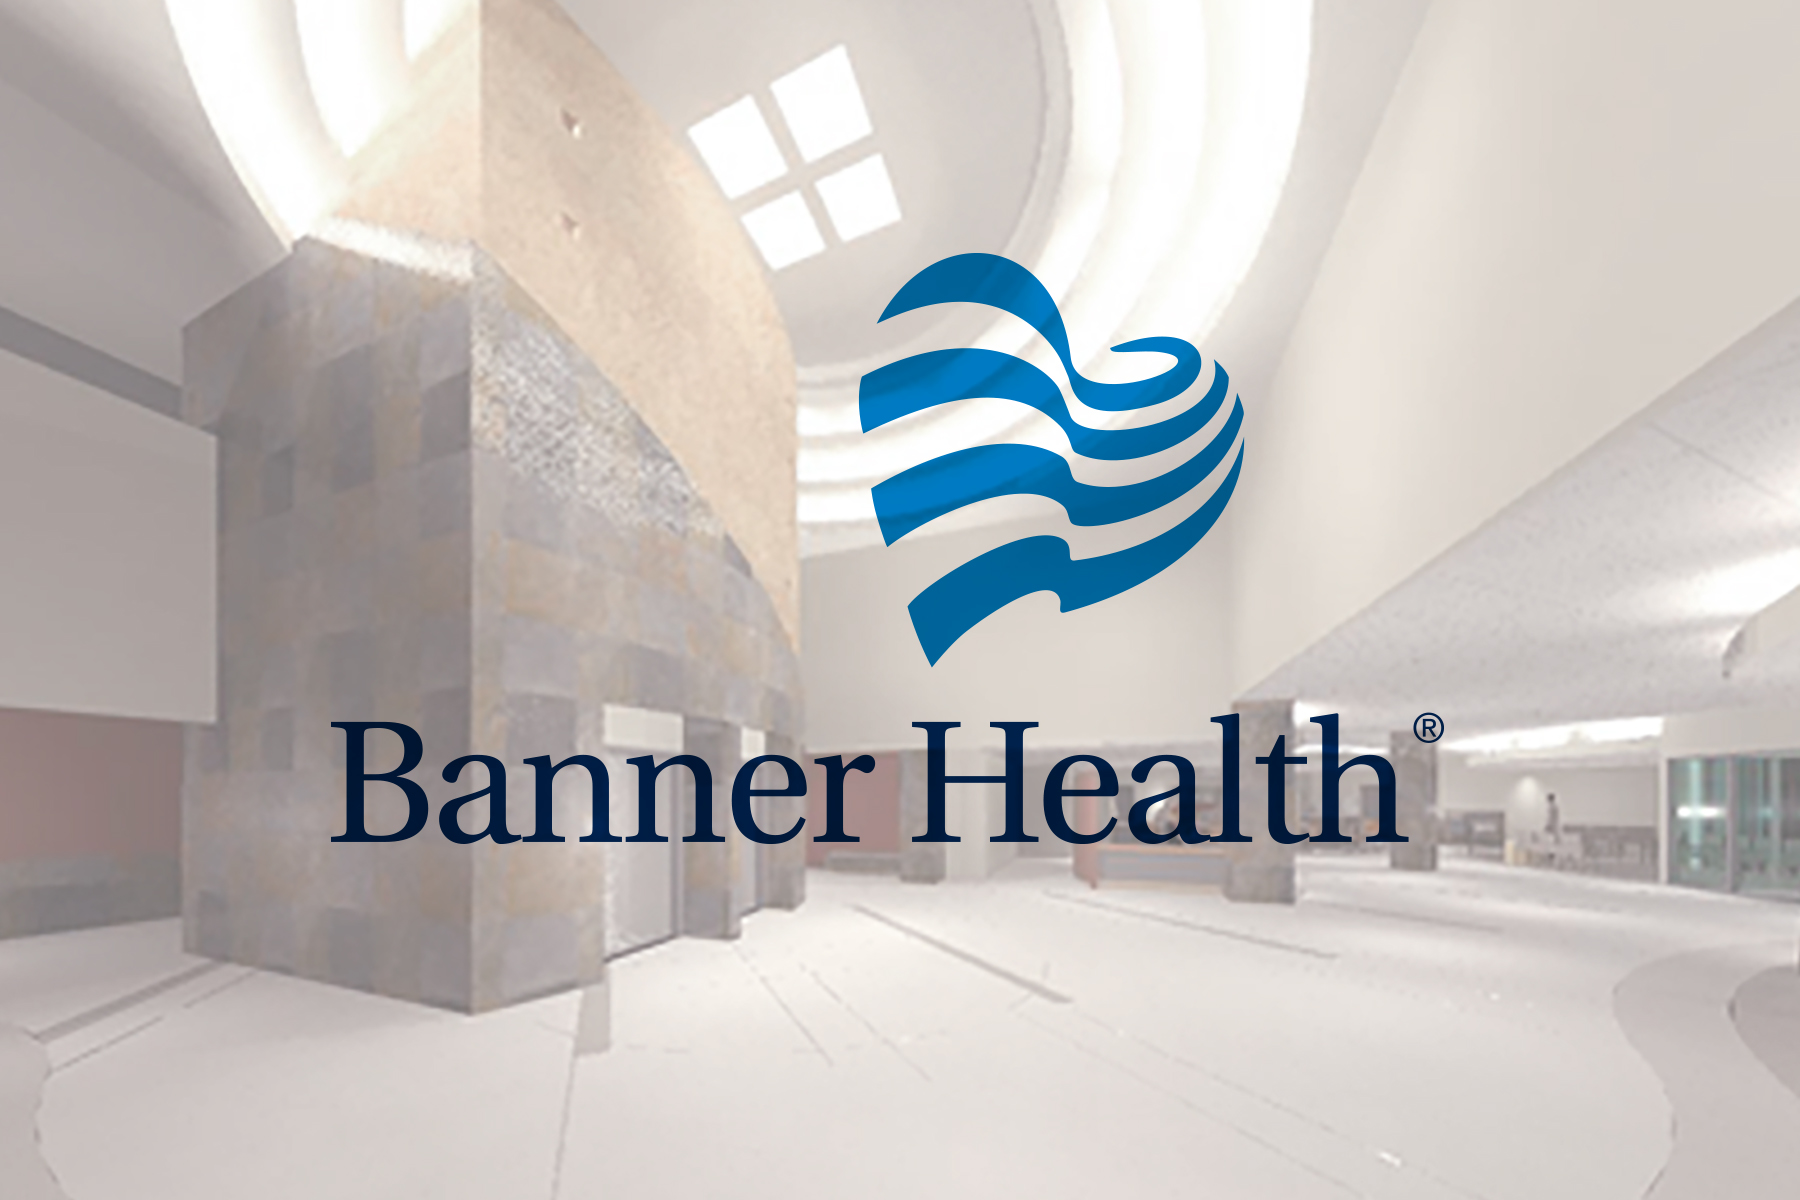 Banner Health Launches Digital Health Program with Xealth & Babyscripts